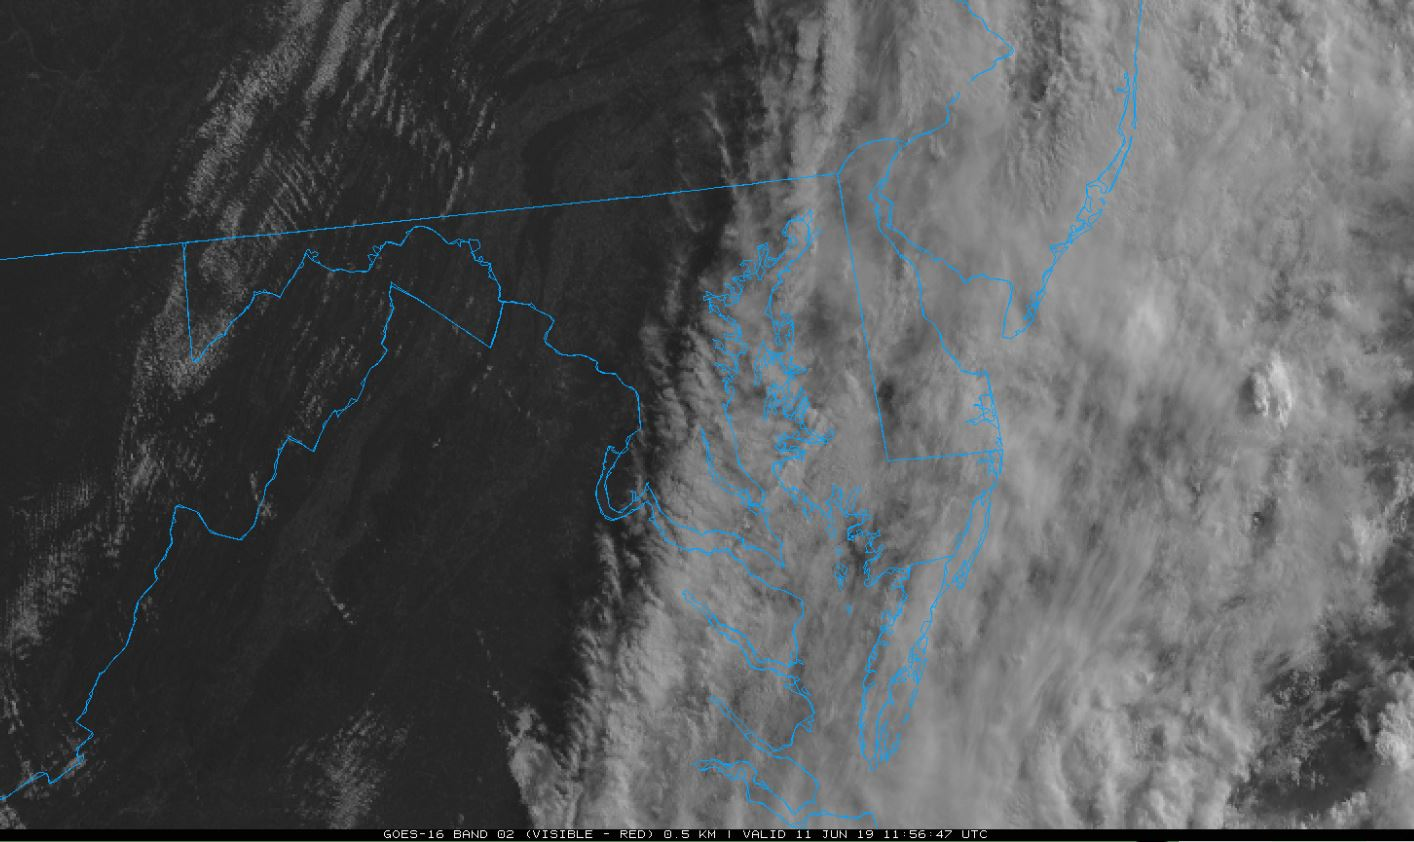 A cold front coming through the mid-Atlantic and Delmarva on June 12, 2019. This is in the visible wavelength from GOES-16.